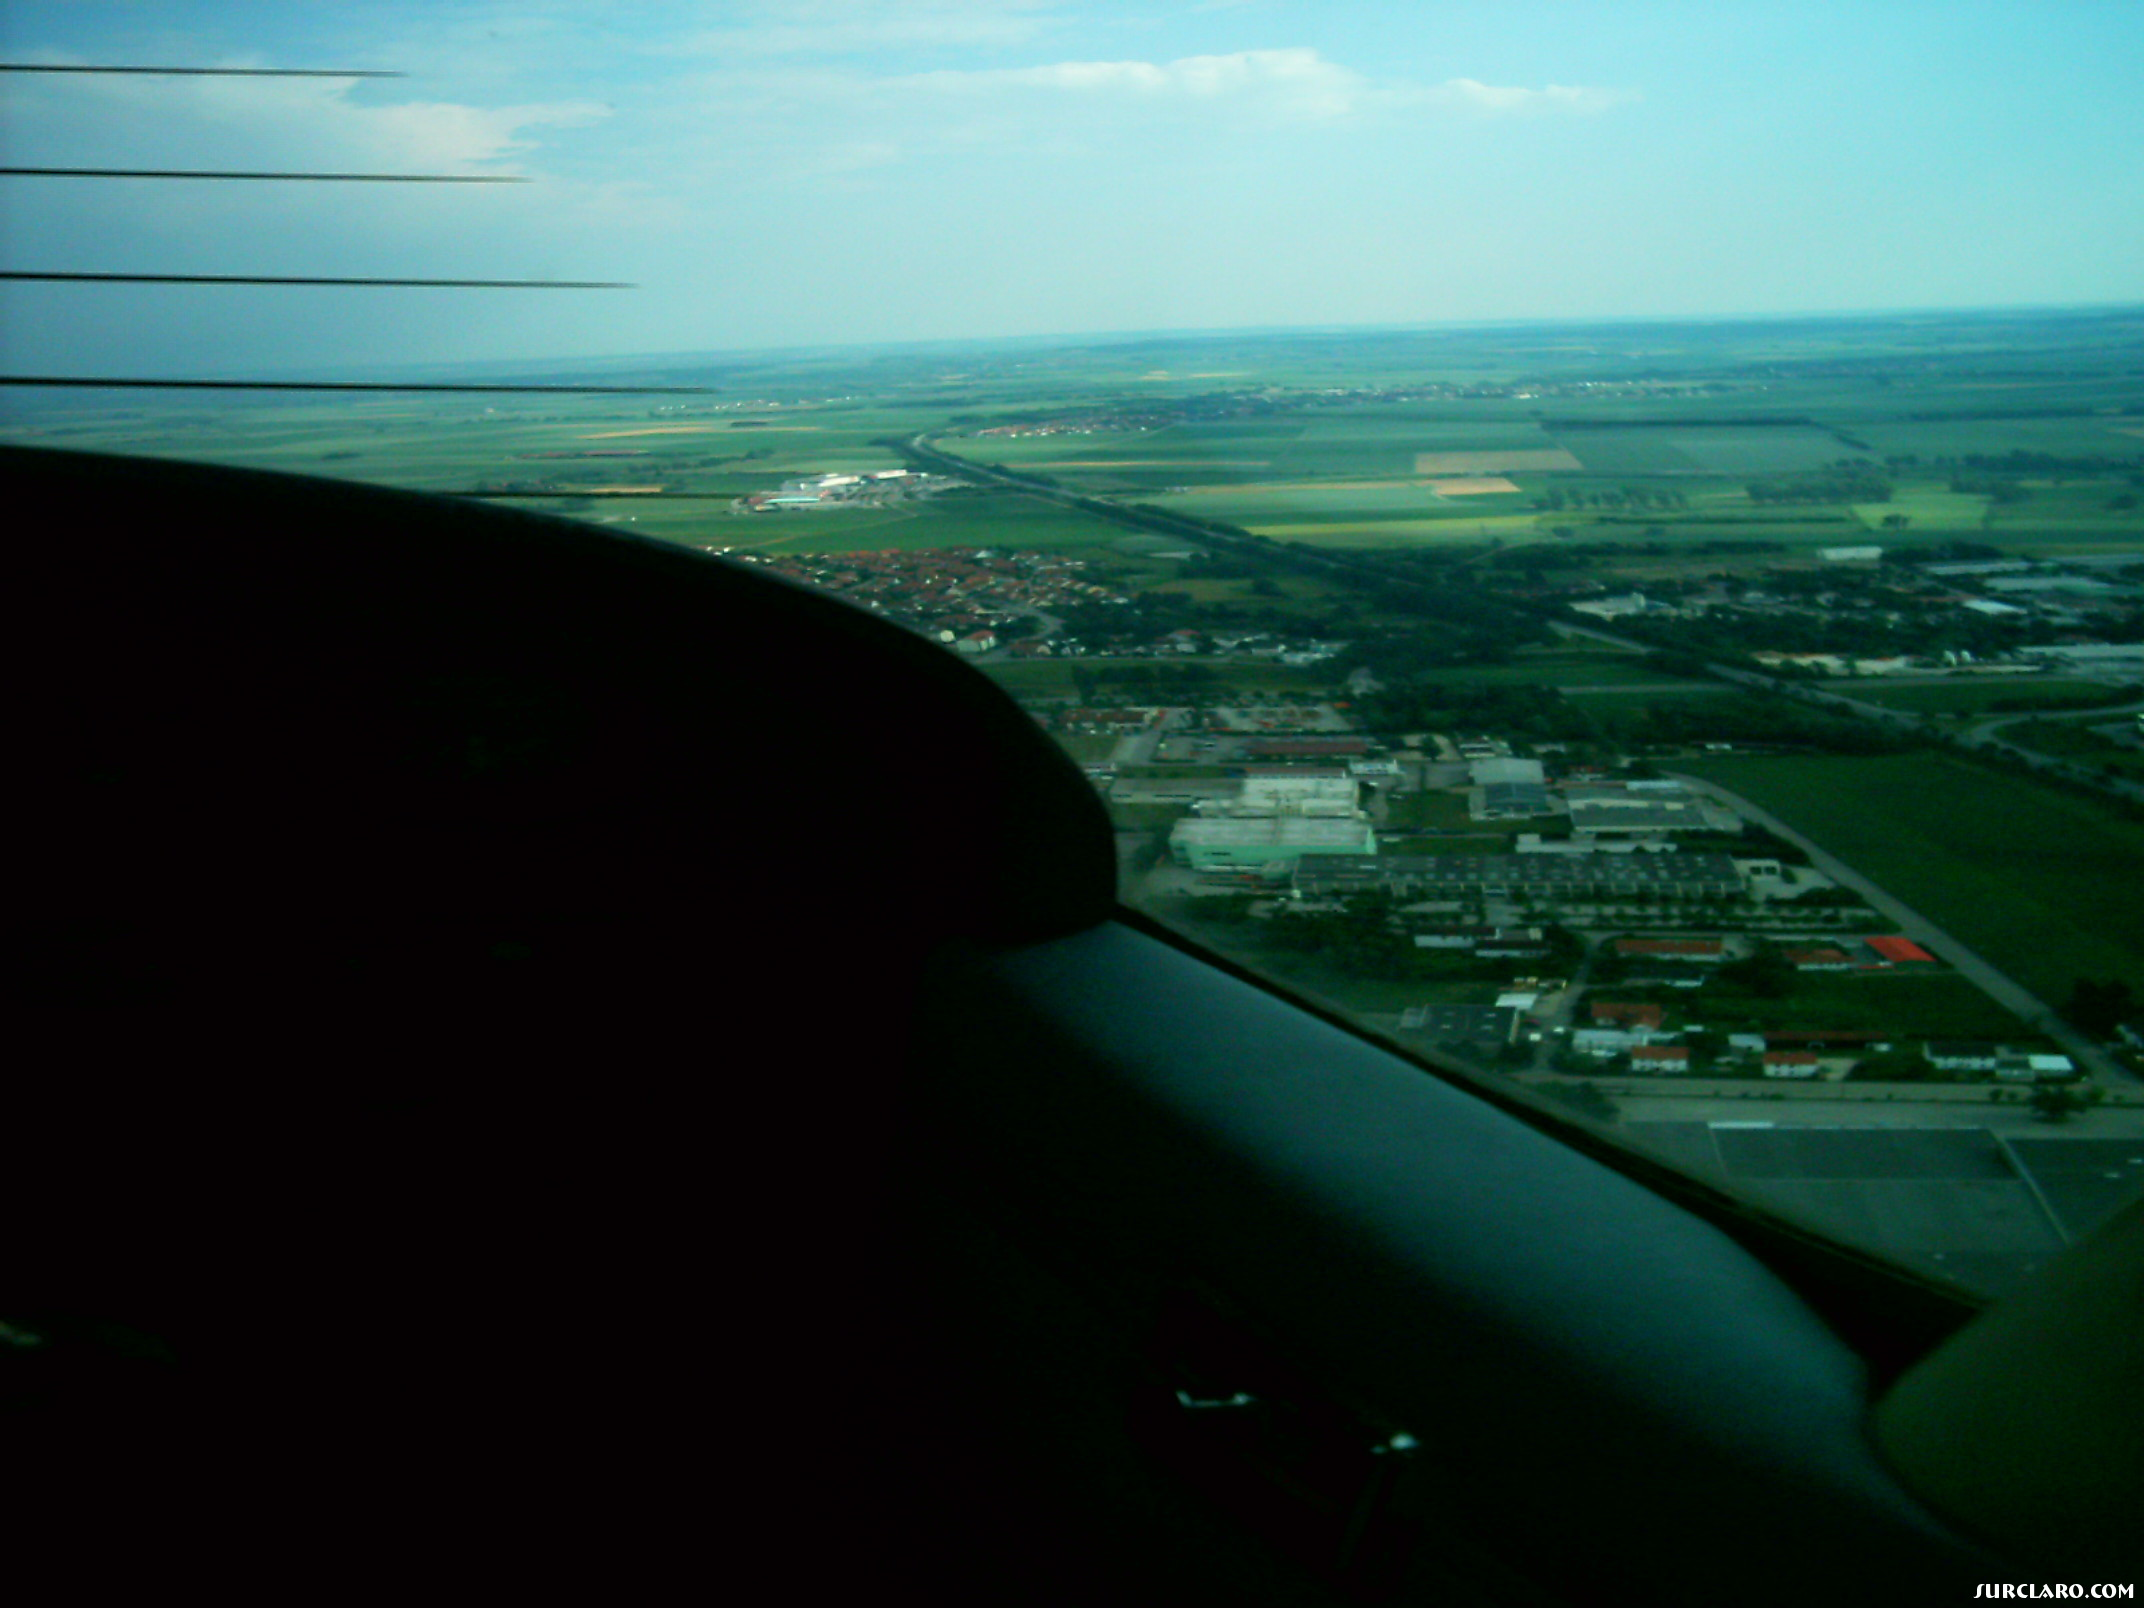 In Cessna 127